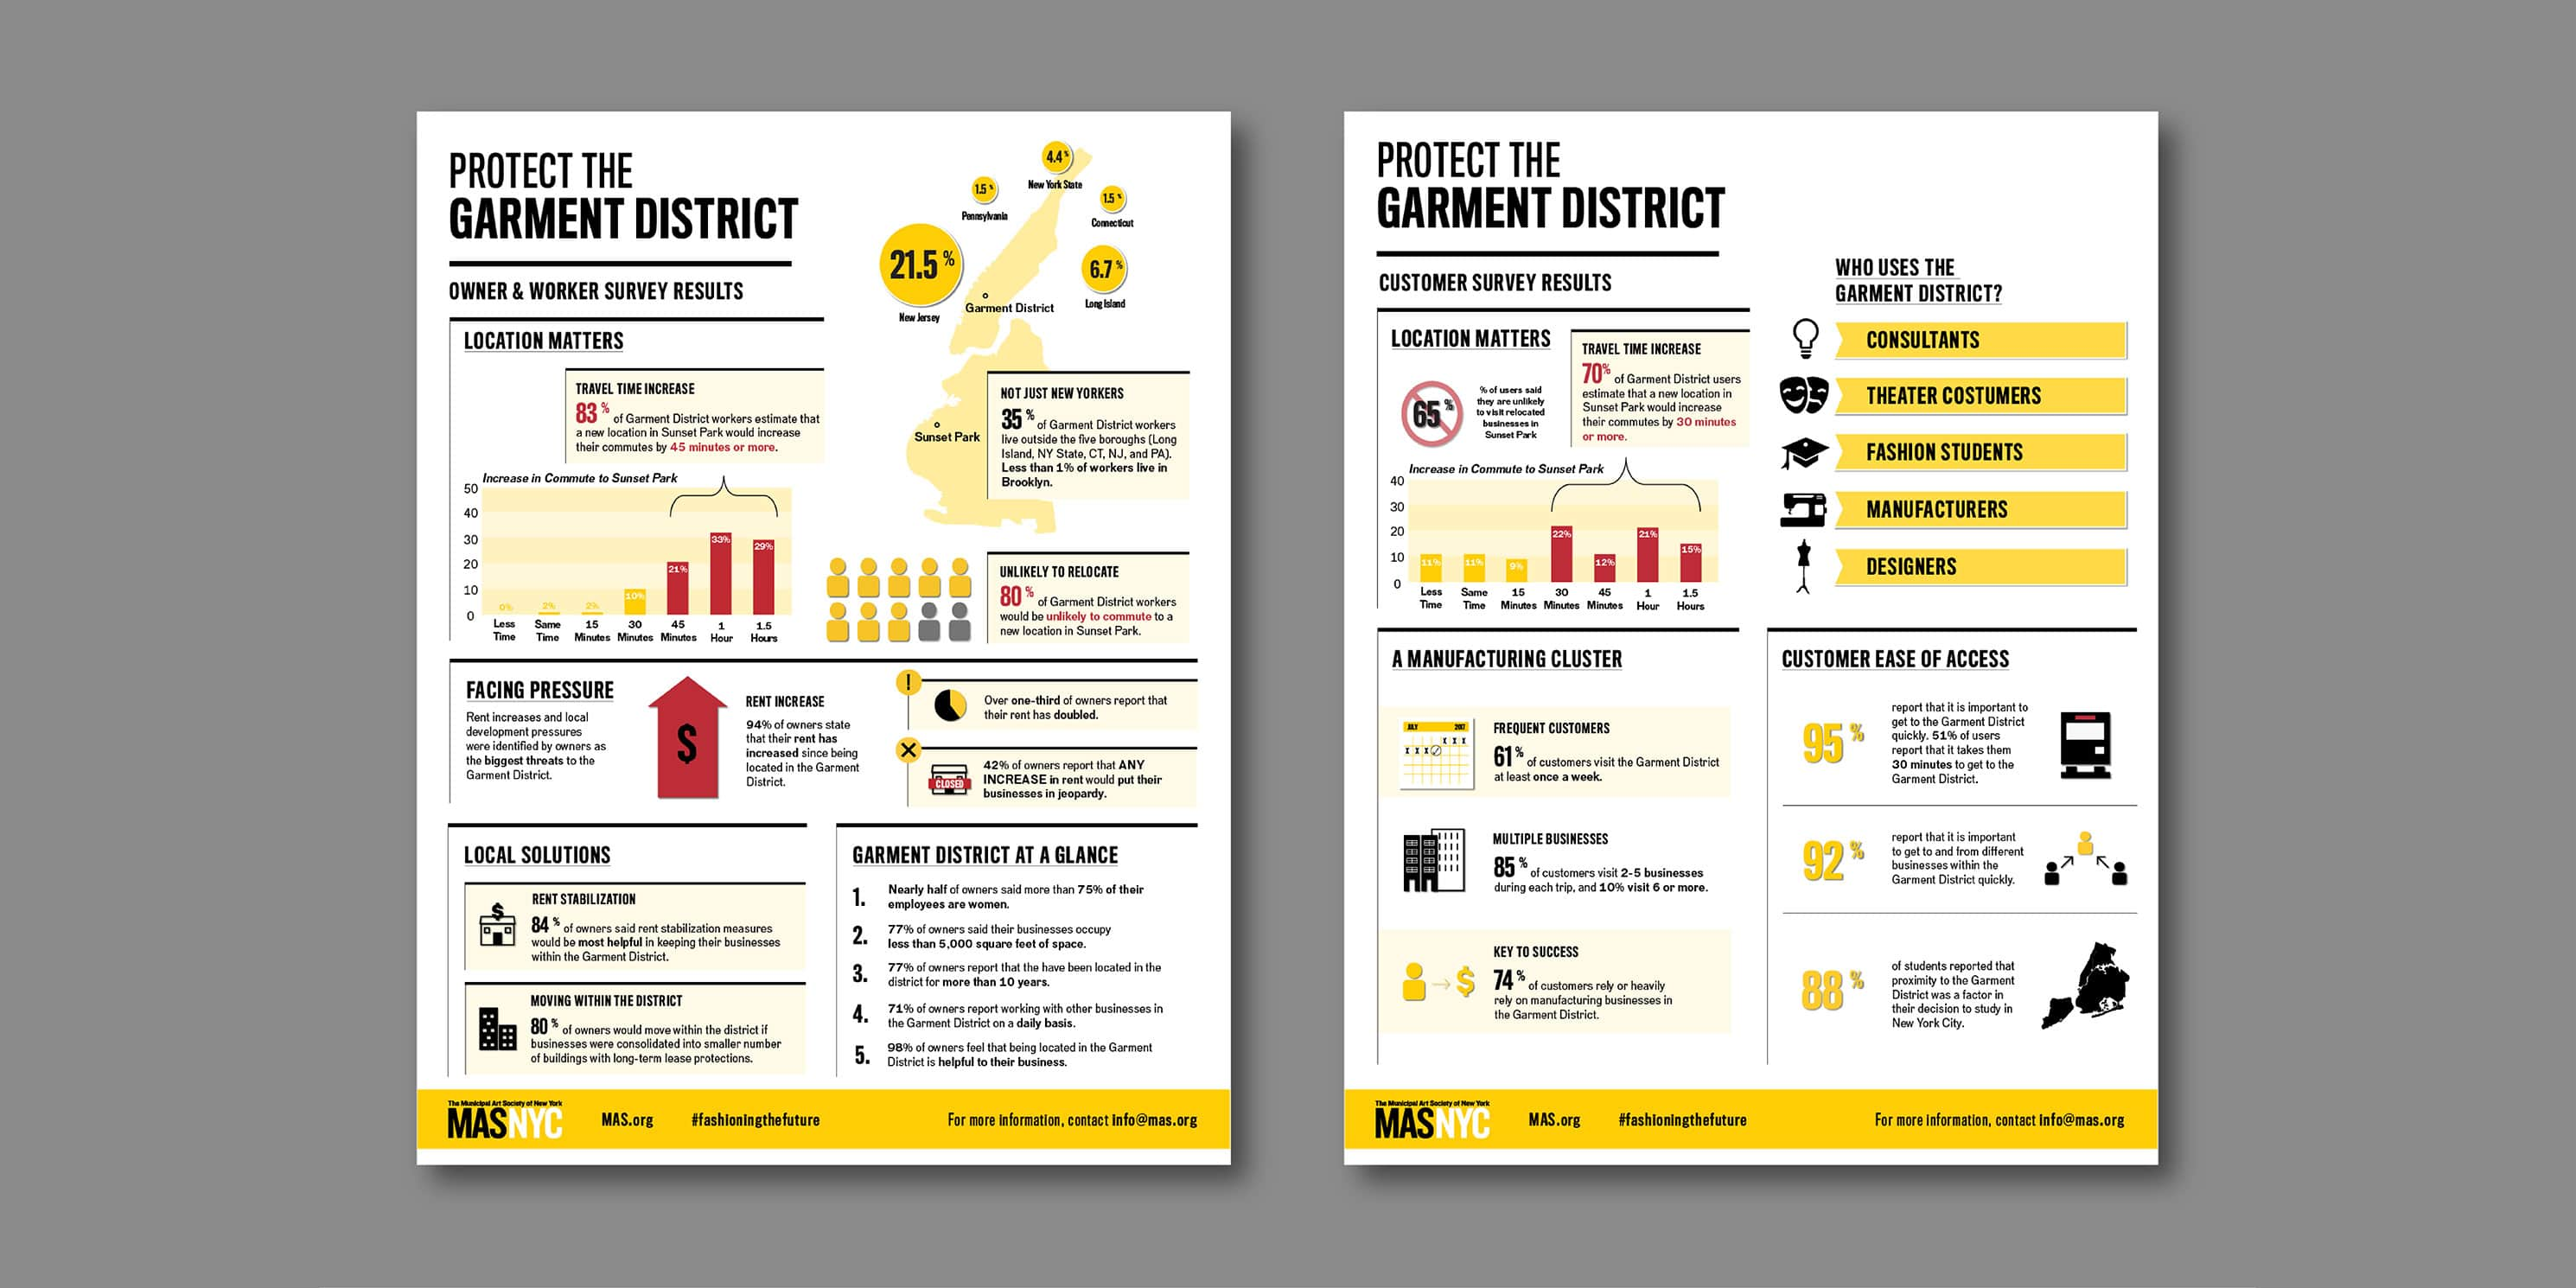 information graphic with results from the Garment District survey